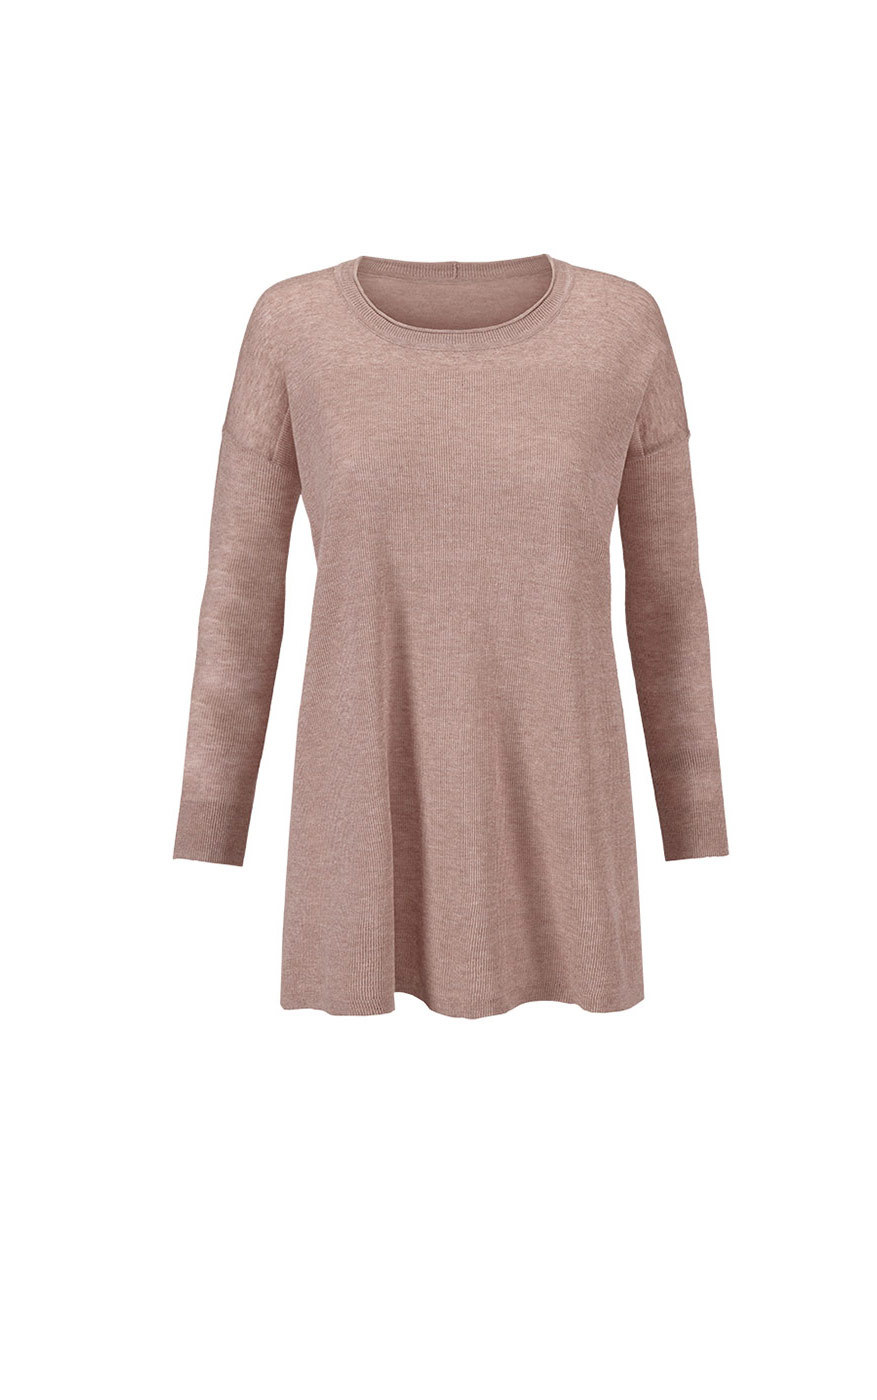 cabi's Play Pullover